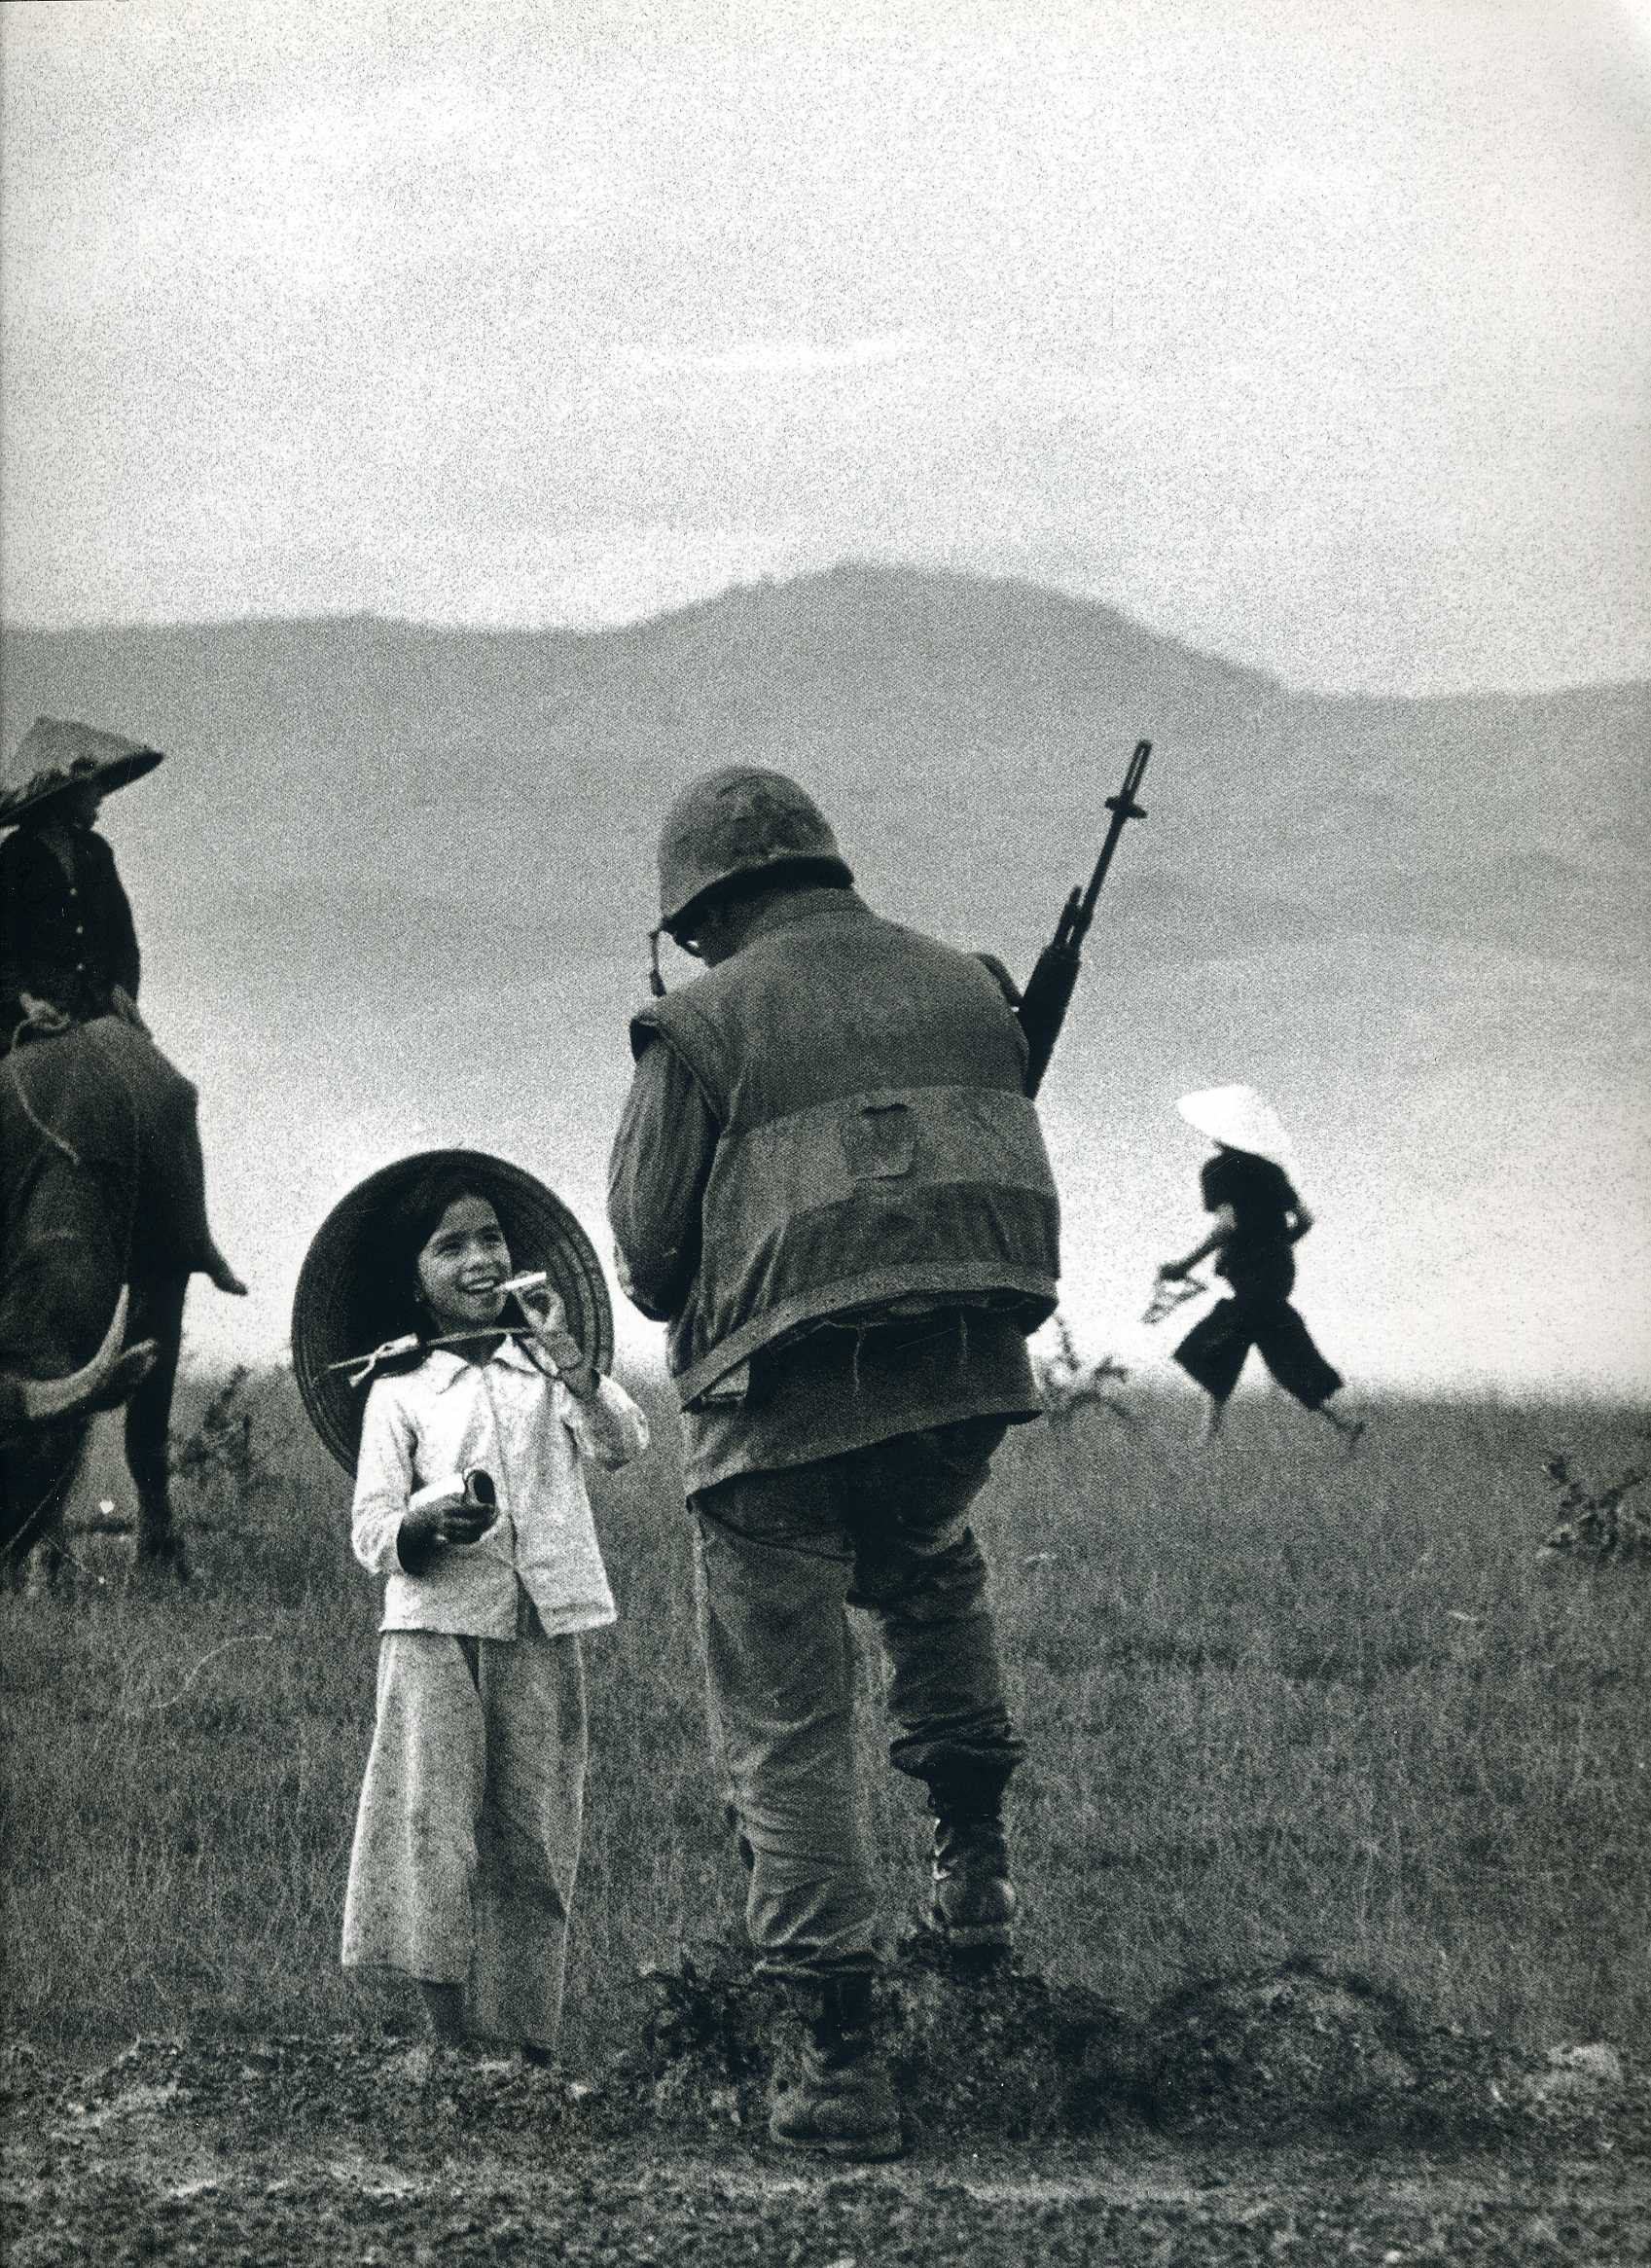 1697x2331 A solider chats with a young country girl. Vietnam, c.1967 by Philip Jones  Griffith [1697 x 2331] ...